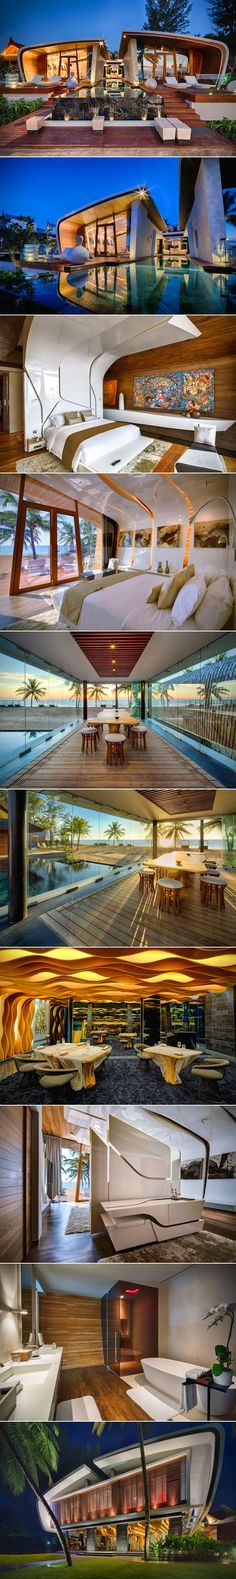 You can treat your senses to any of the 10 villas at Iniala Beach House in Phuket, Thailand, but two of them – handled by A-cero – are especially noteworthy for their unique charm and layout. Both rooms offer decadent ocean views through massive windows, while the floors and the walls of the rooms are built with natural local wood. A-cero designed all of the furniture in each room as well, with high-quality polycarbonate used so as to not show any joints. Soothing whites and curved lines…